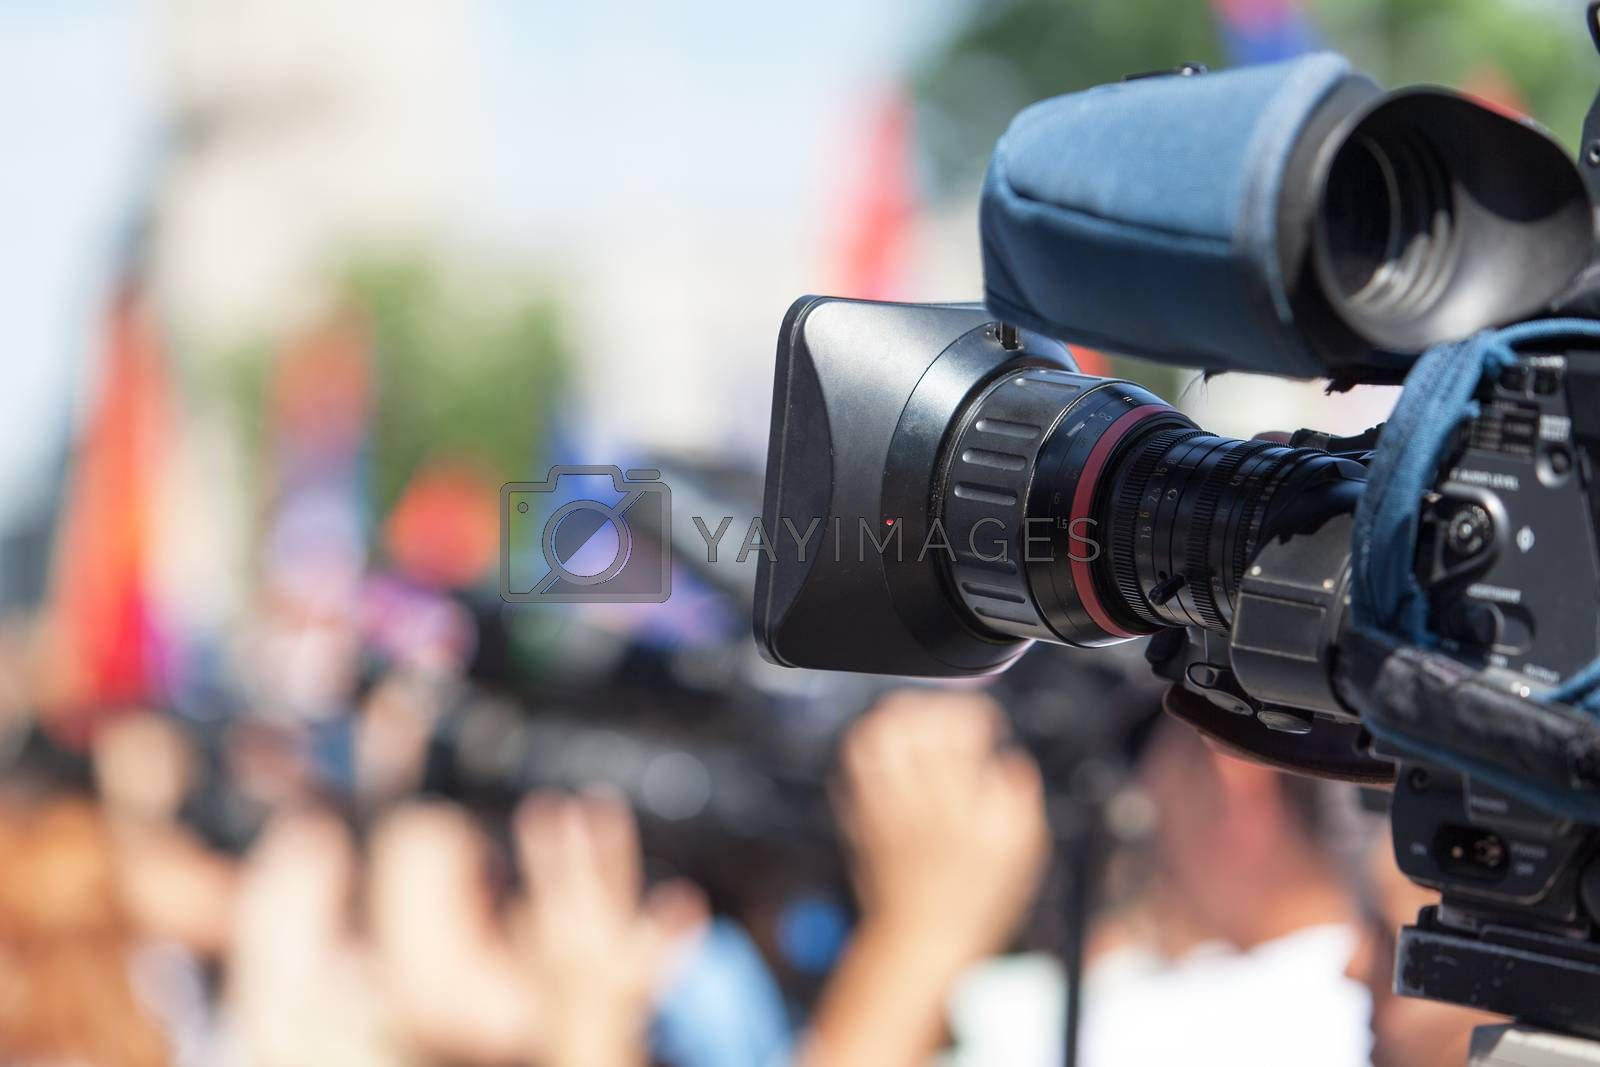 Shooting an event with a video camera